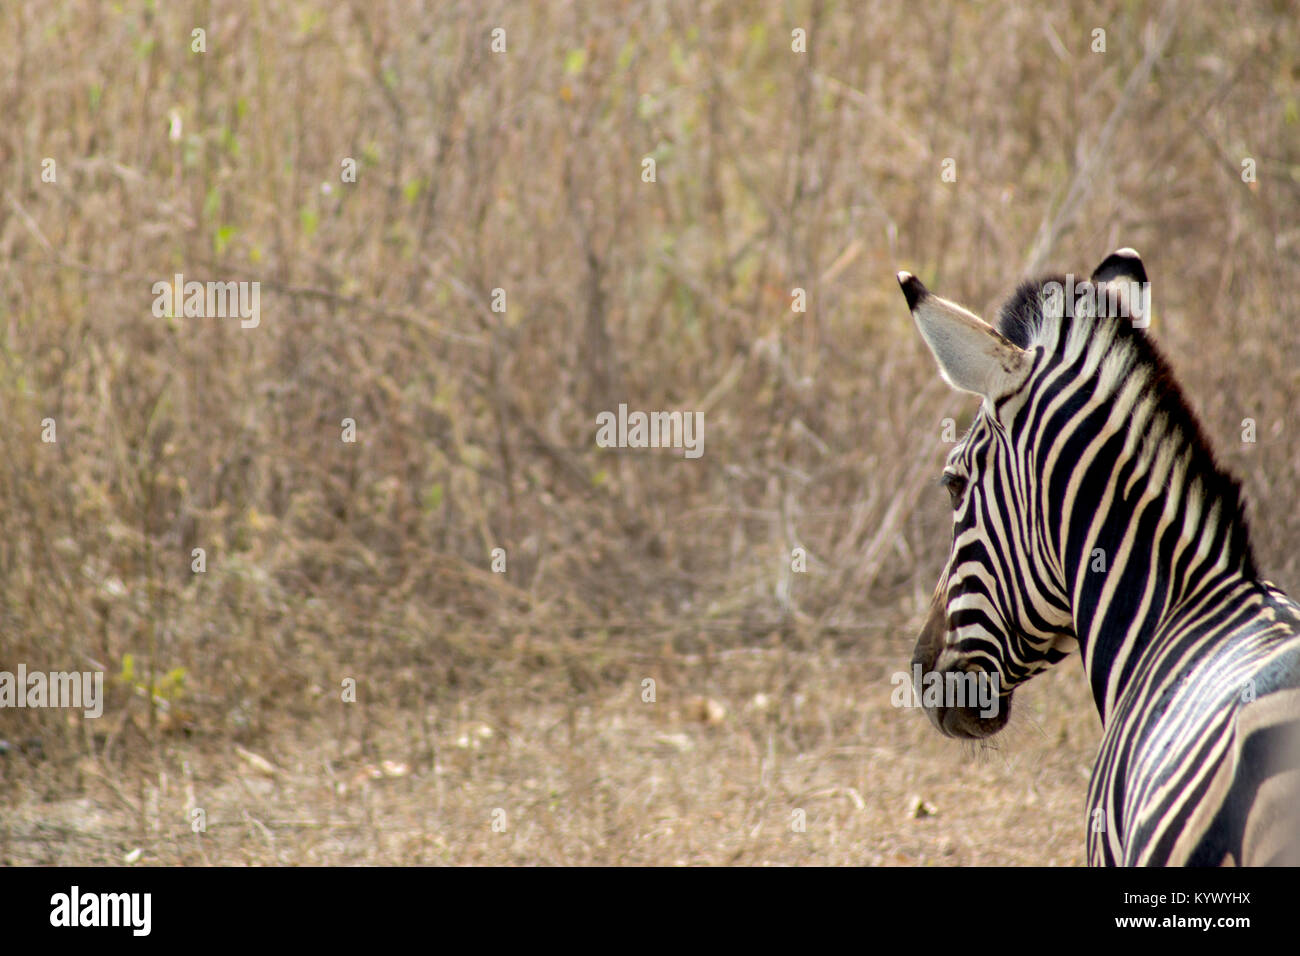 A zebra in Foundiougne, Senegal - Stock Image